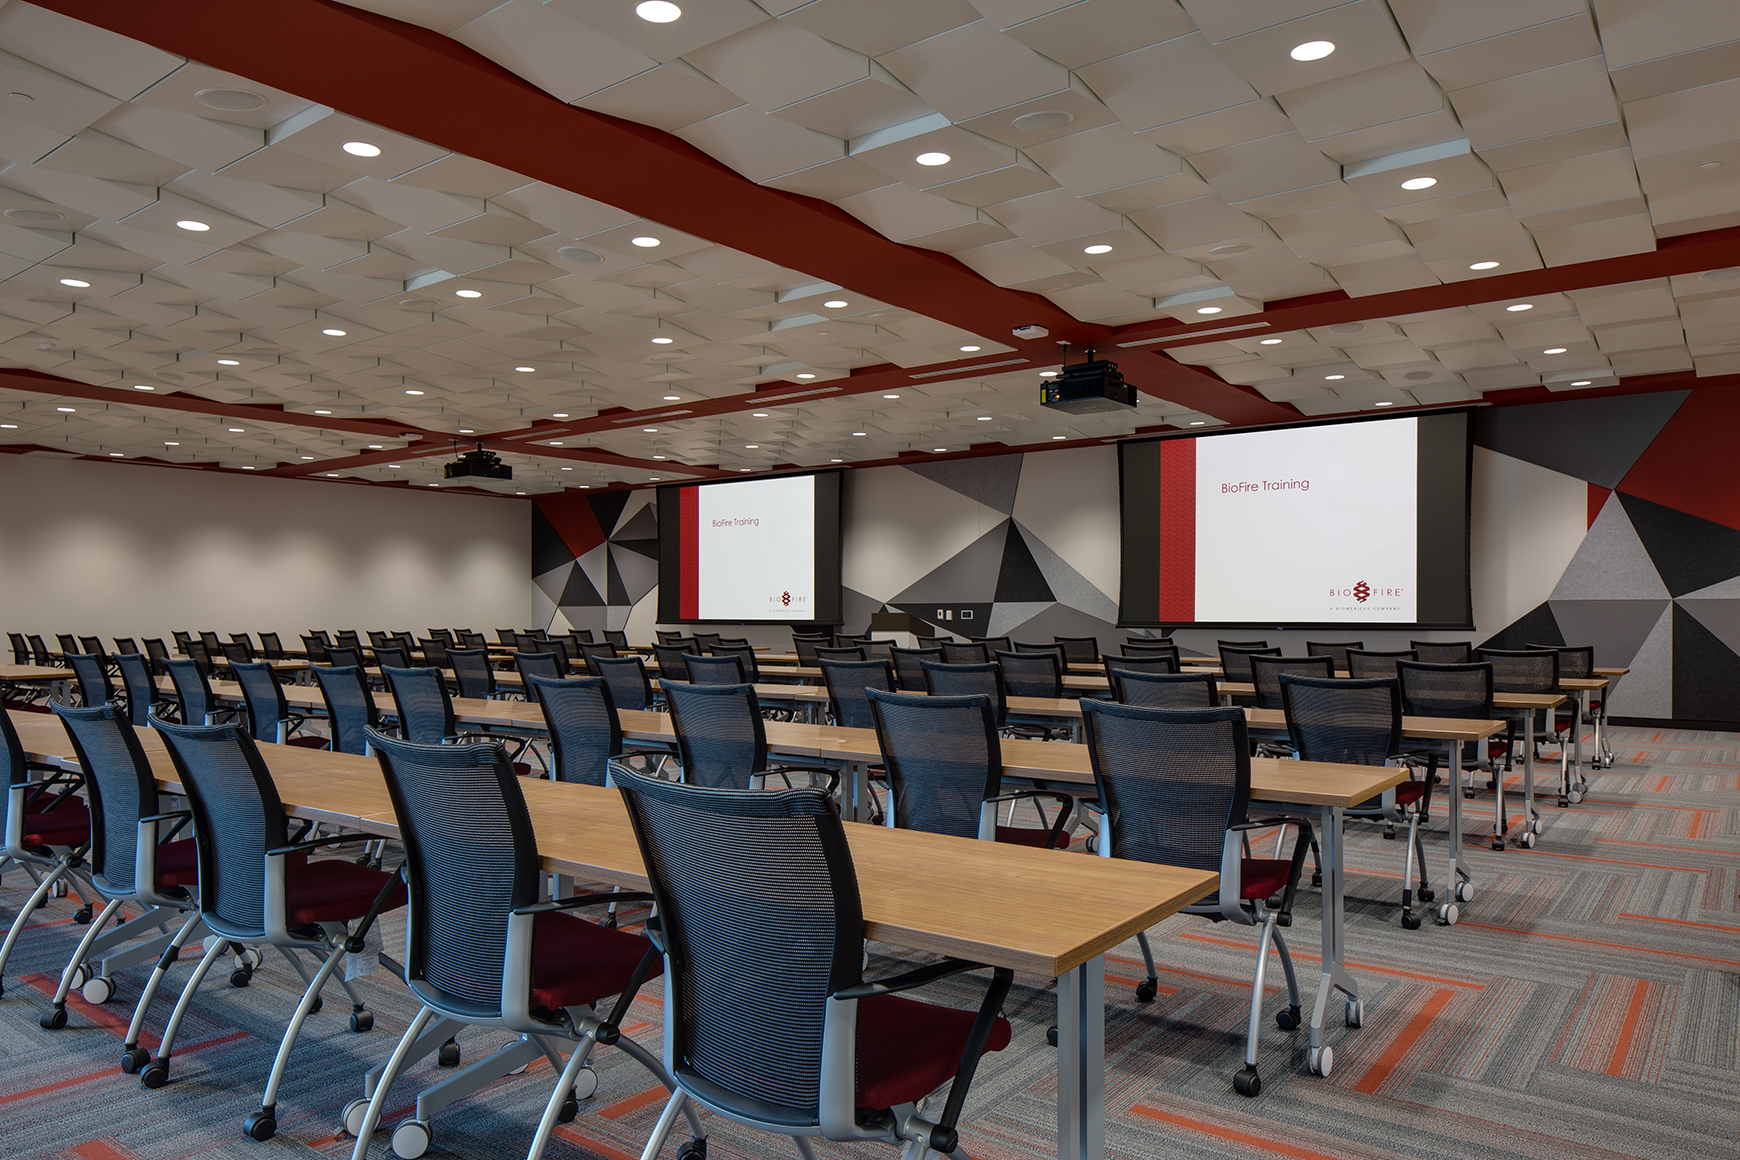 This is an image, taken from the main entrance to the auditorium at a bio tech firm in Salt Lake City, UT. It features Herman Miller chairs in rows, accoustic panels on the ceilings and walls, two large display screens and moveable wooden tables.